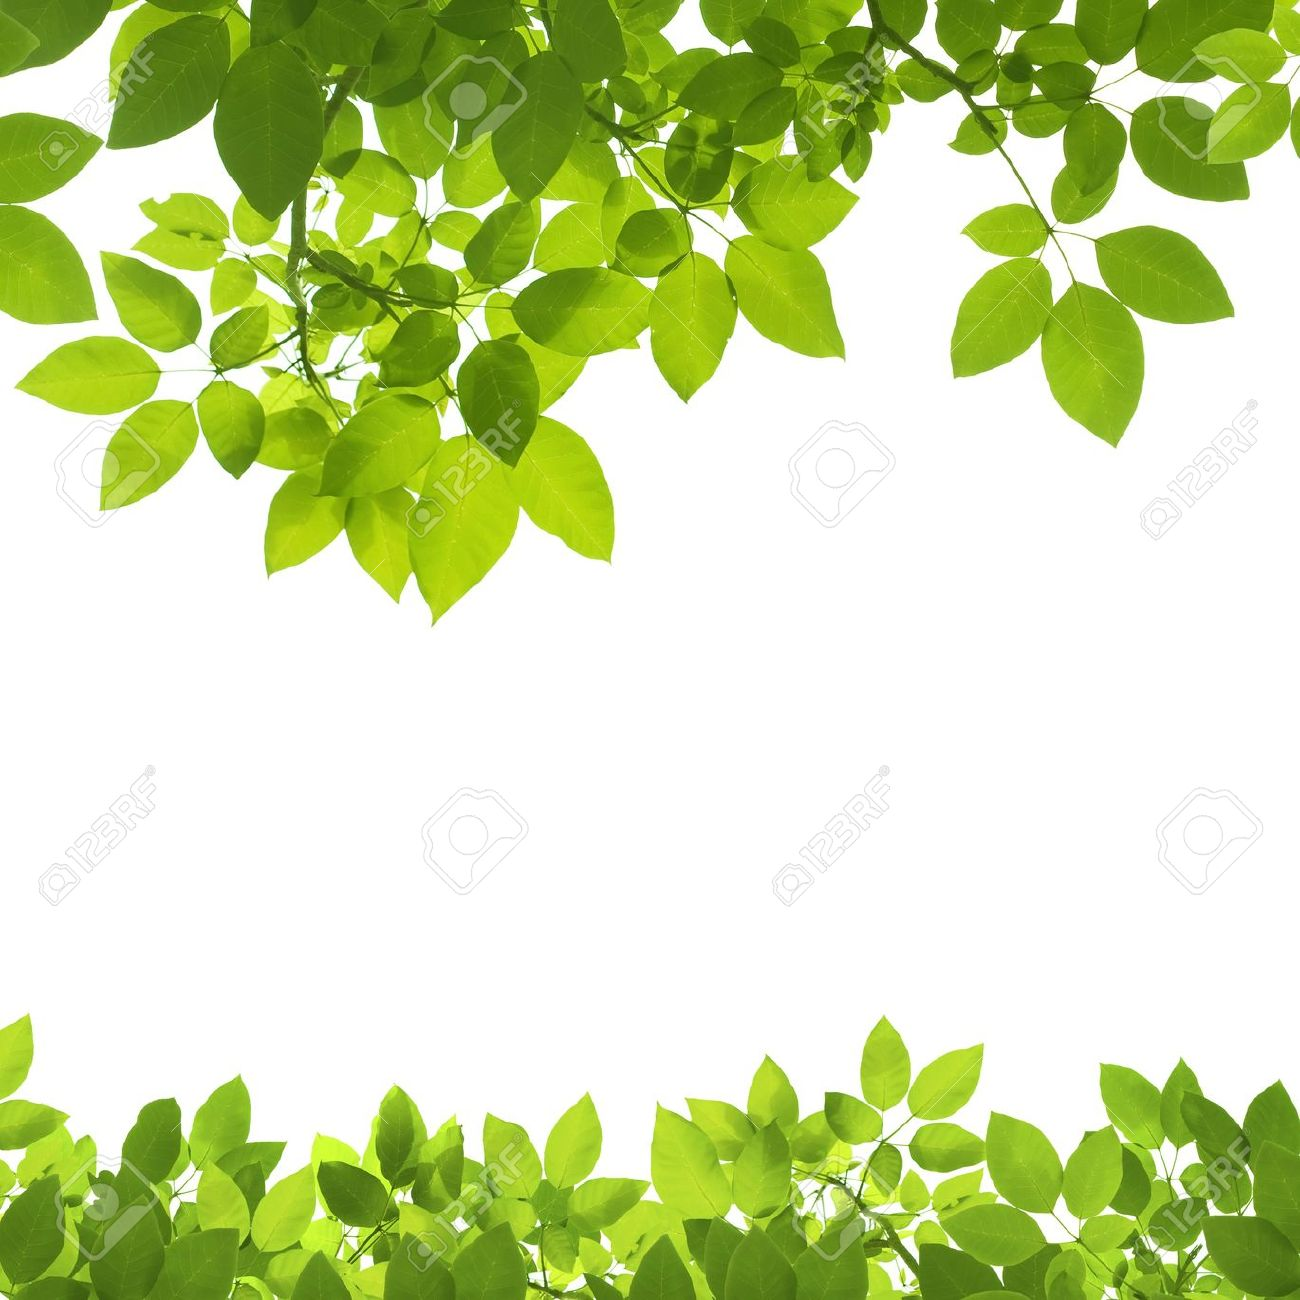 Green Leaves Border On White Background Stock Photo, Picture And.